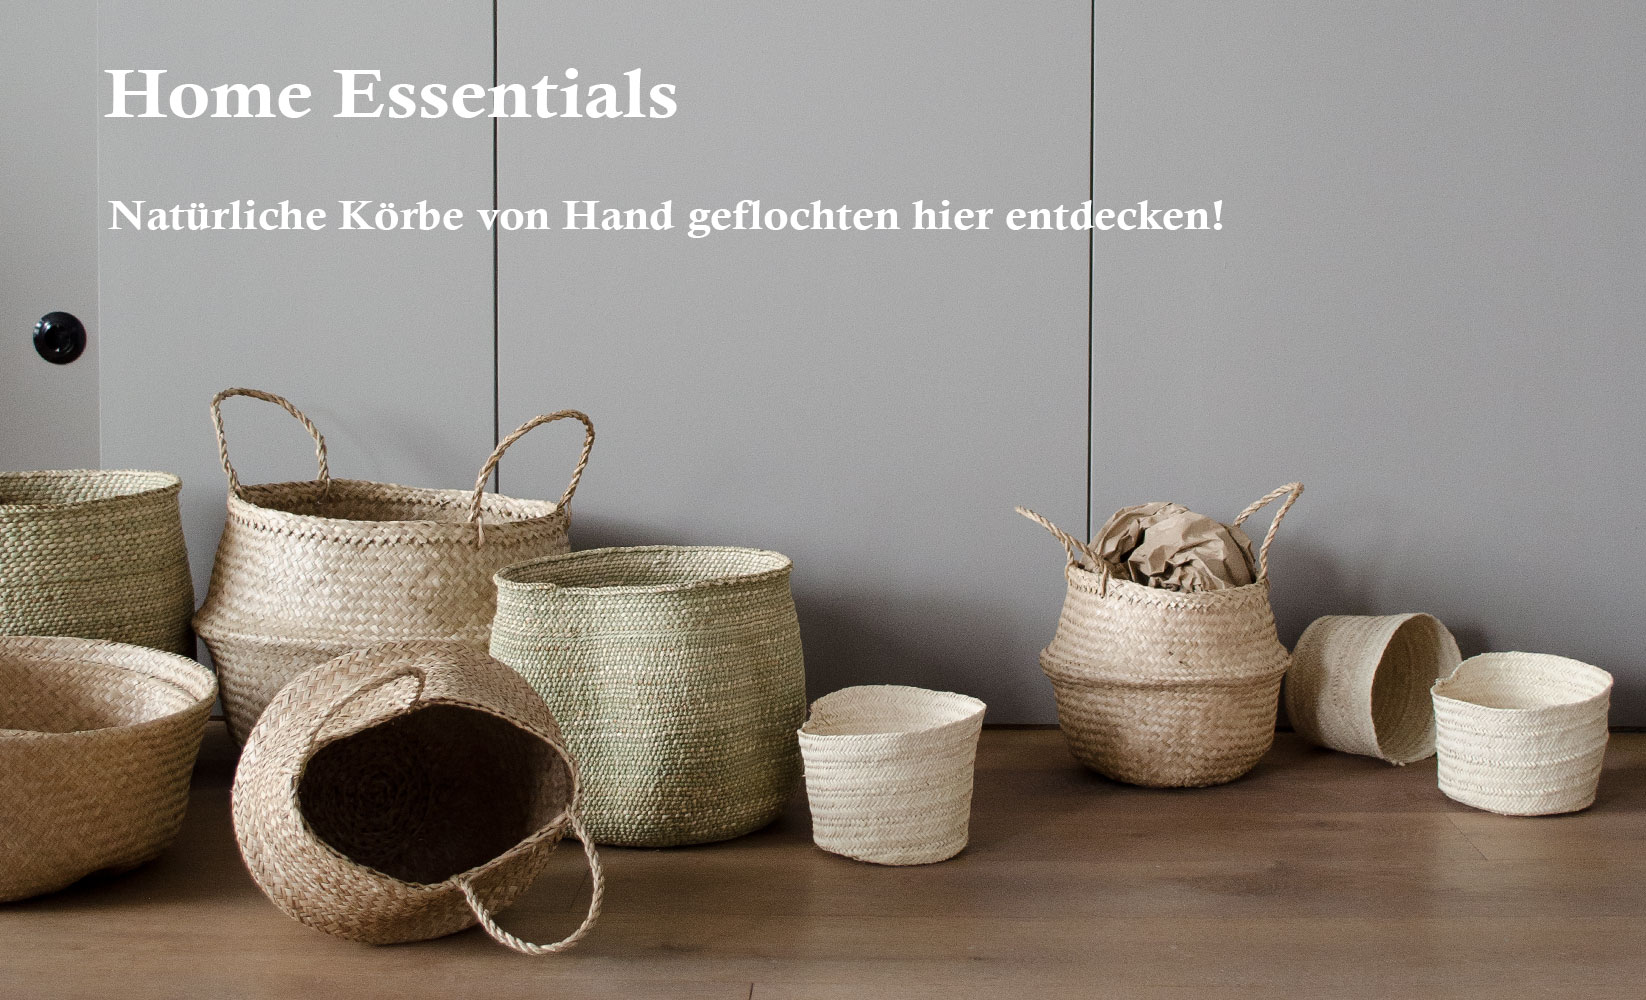 Natürliche handgeflochtene Körbe Rice Korb Iringa Korb Natural basket rice basket iringa basket storage baskets